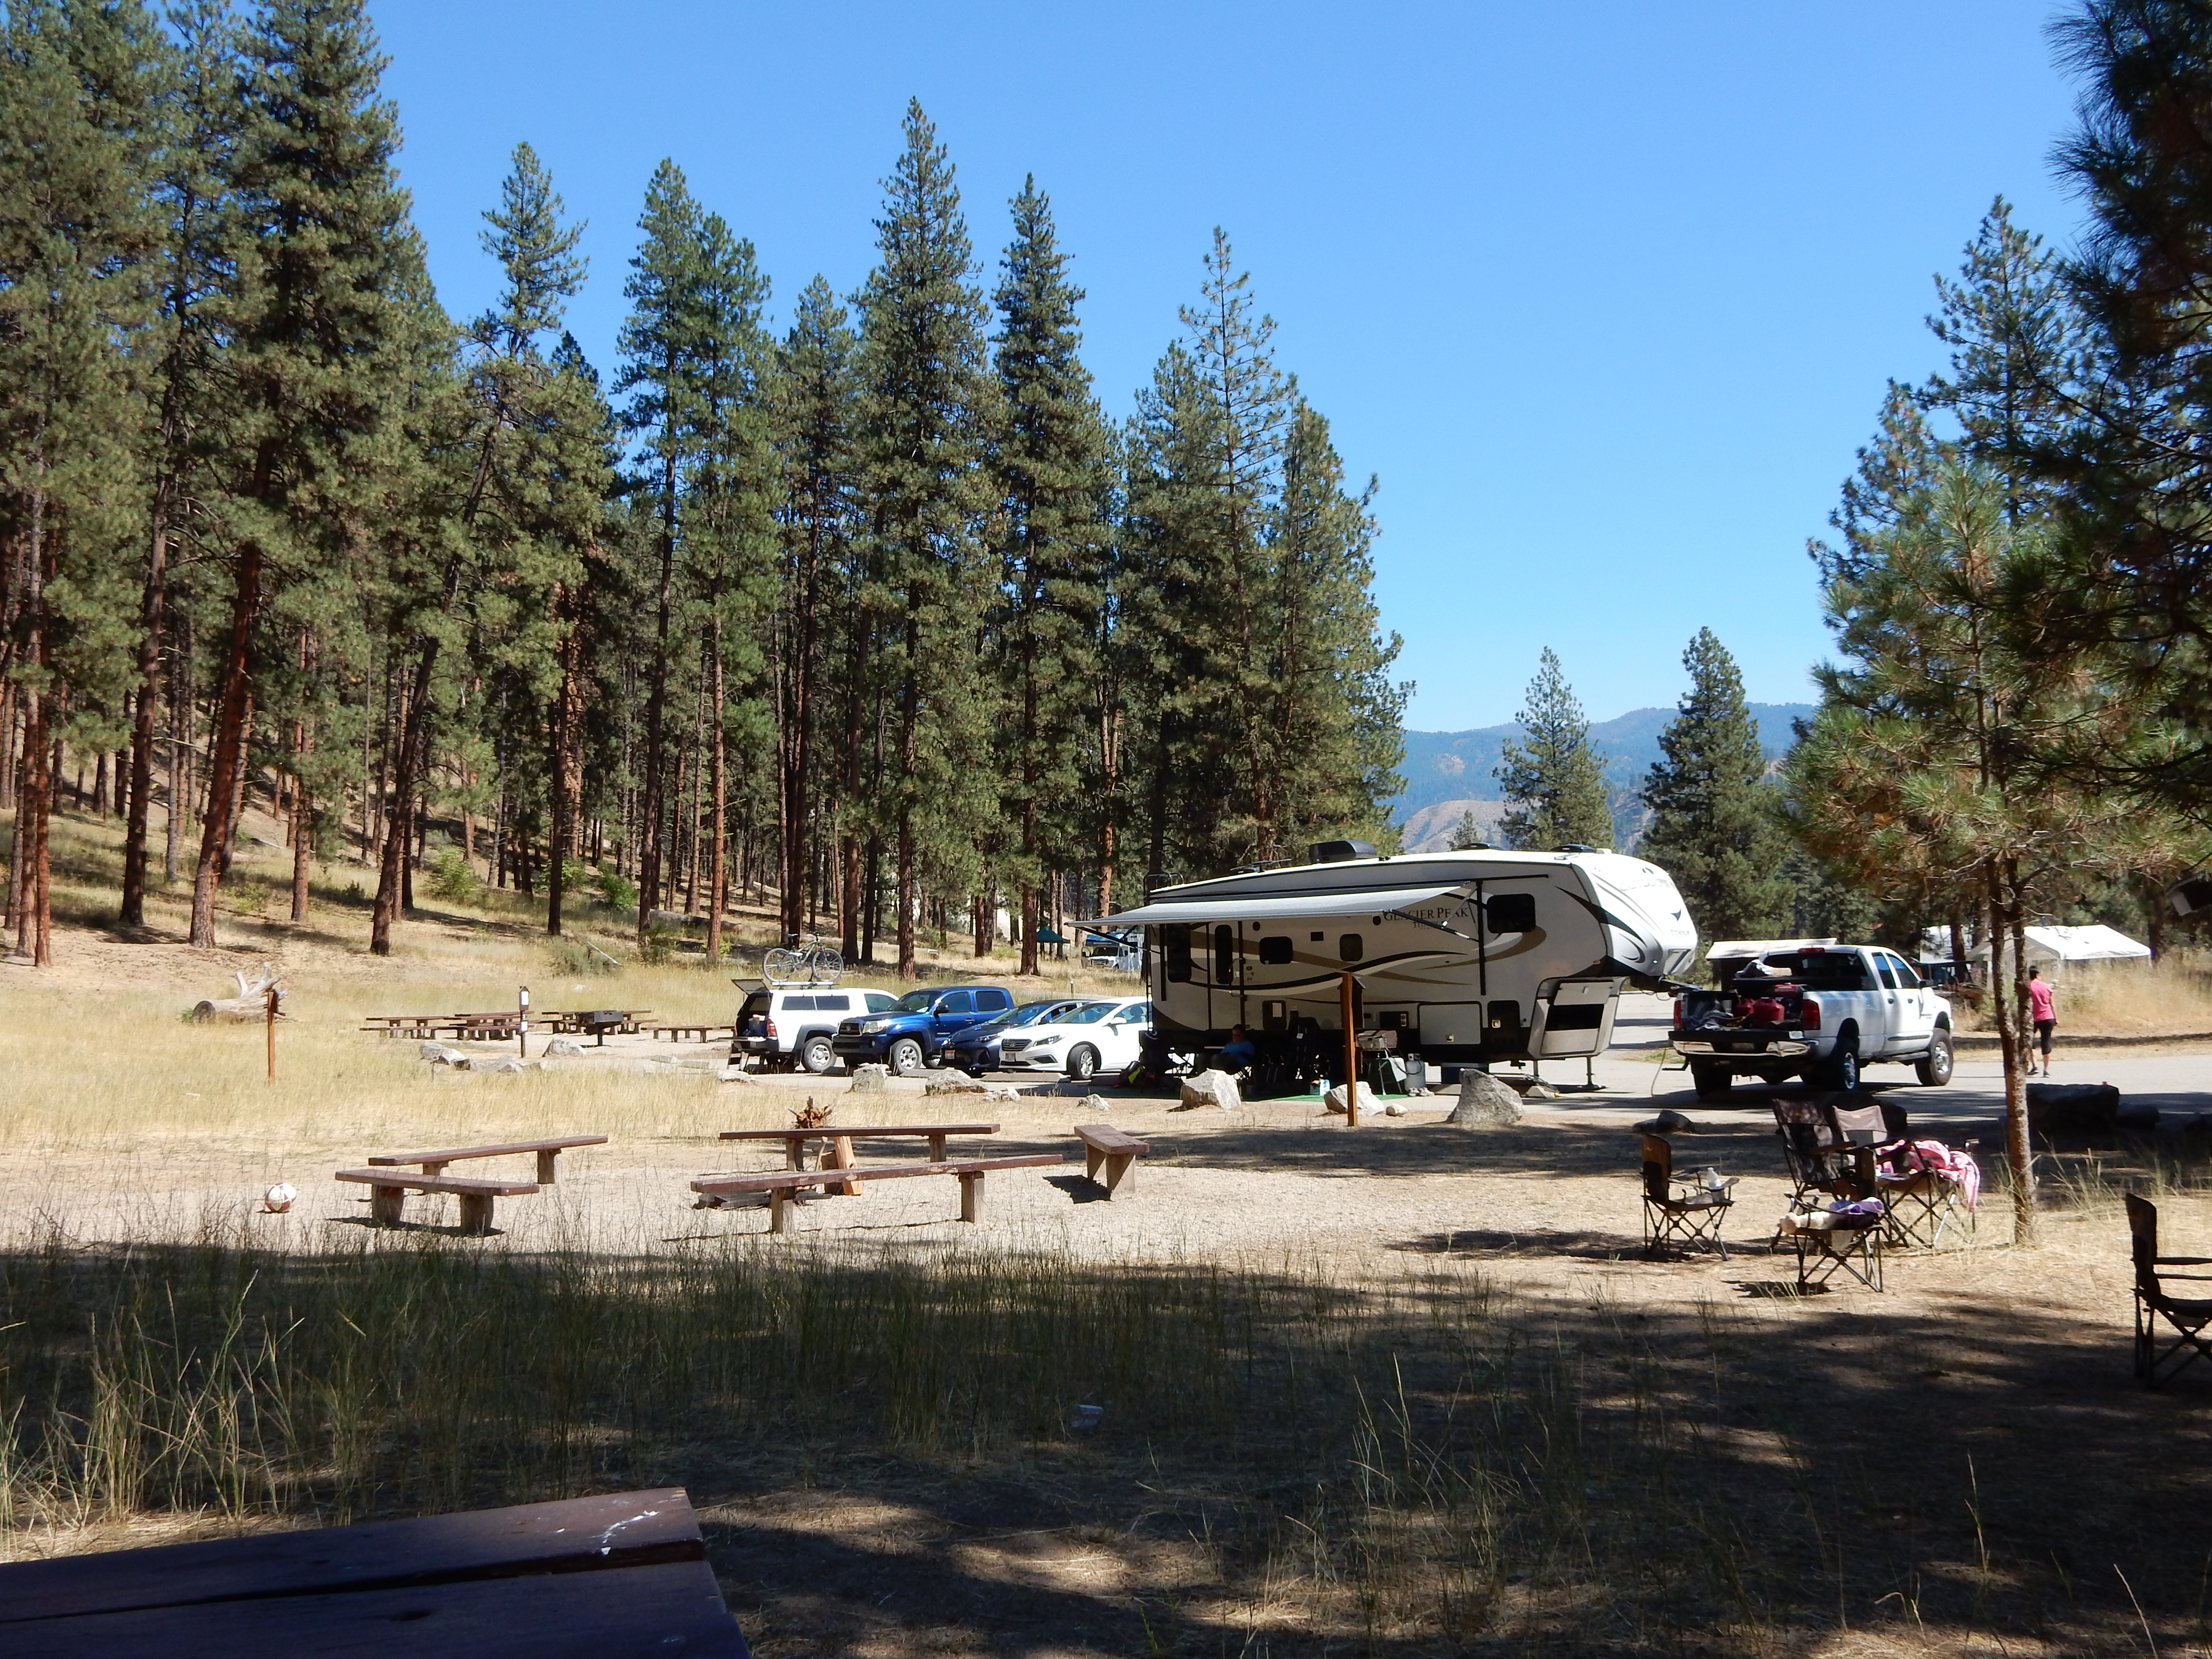 The Hot Springs campground in the Boise National Forest.